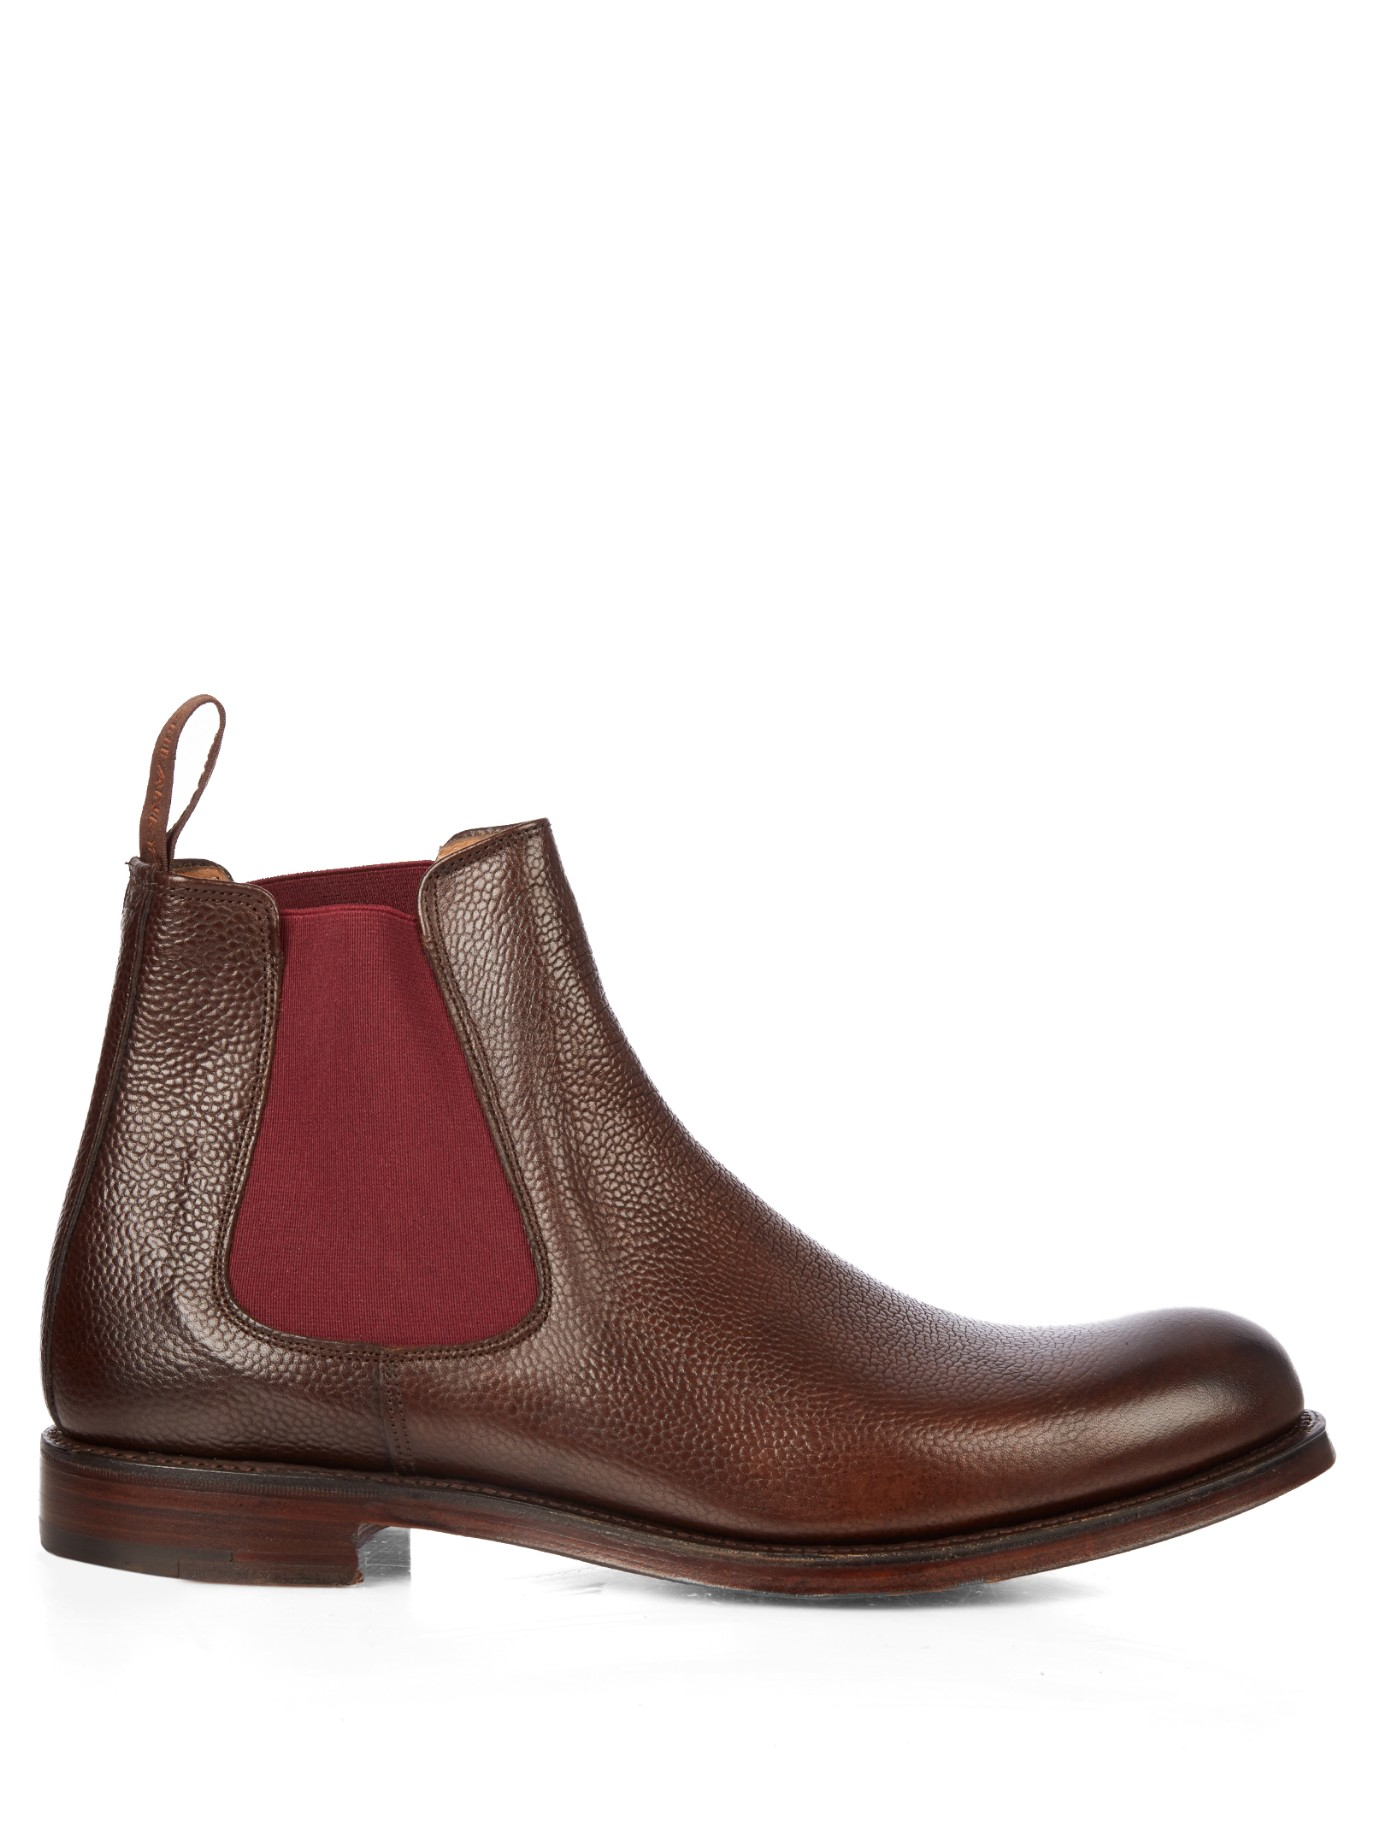 cheaney barnes ii chelsea boots in brown for men lyst. Black Bedroom Furniture Sets. Home Design Ideas